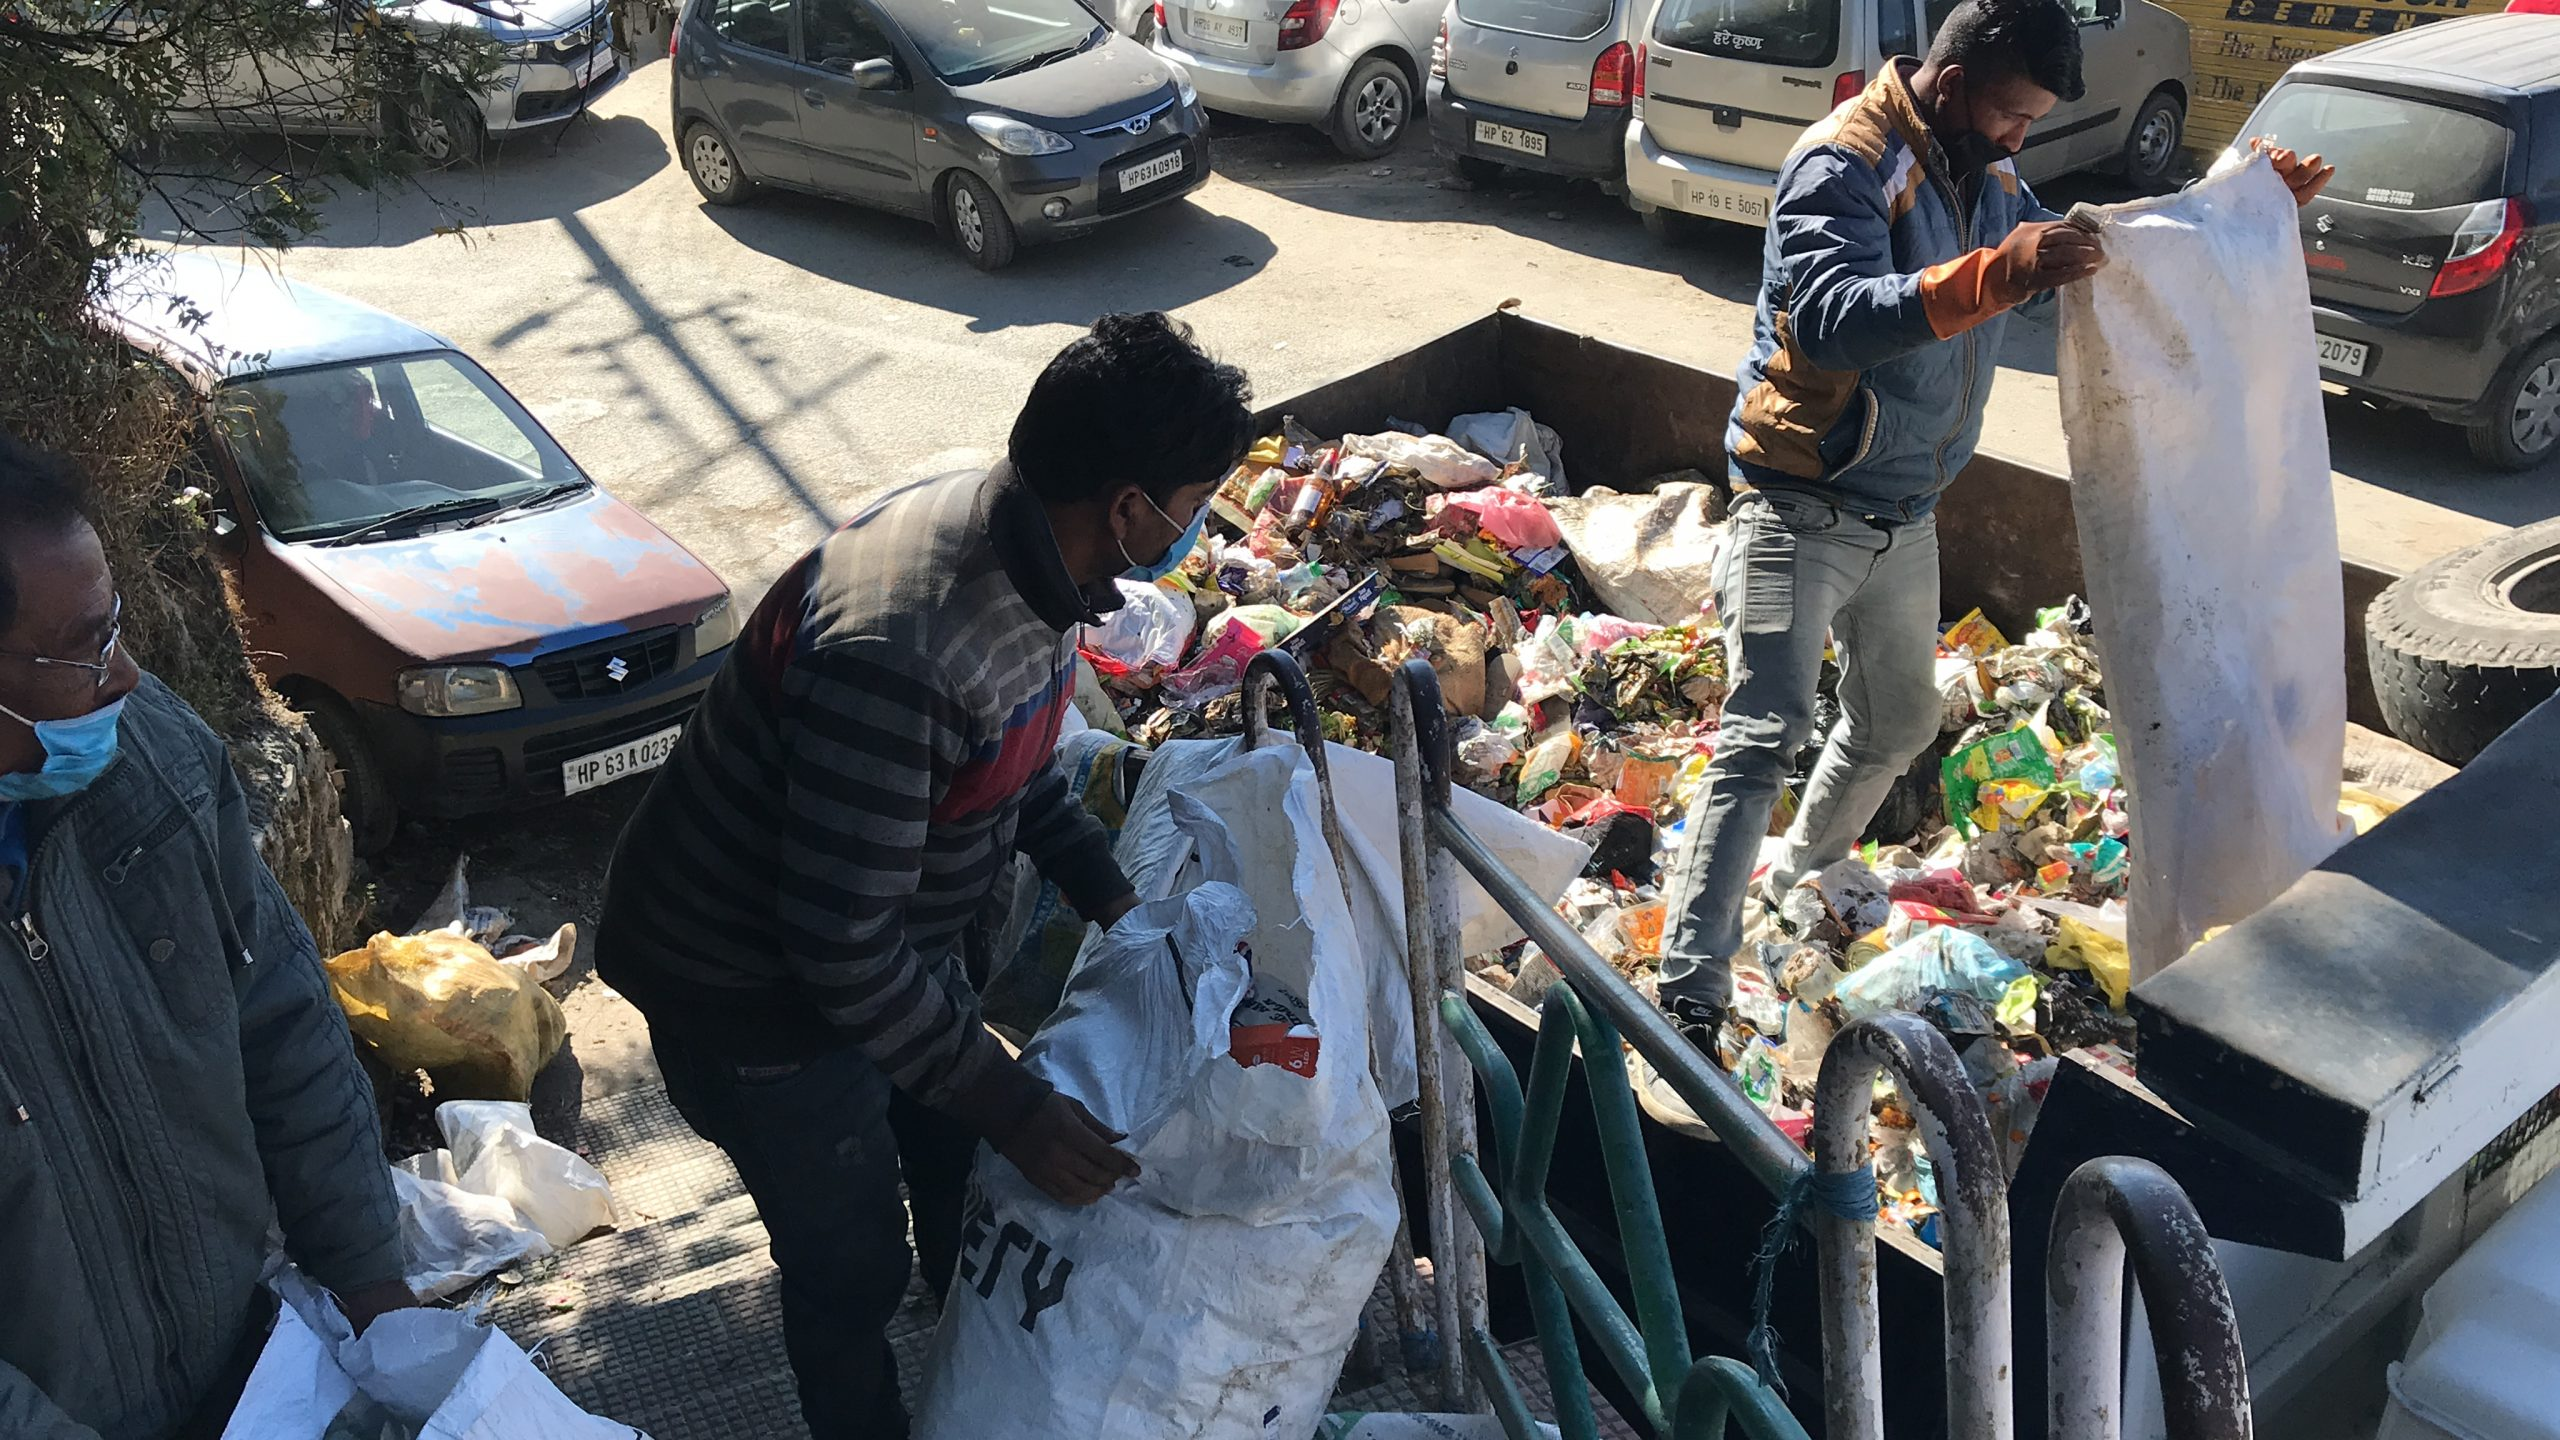 Garbage collection in Shimla